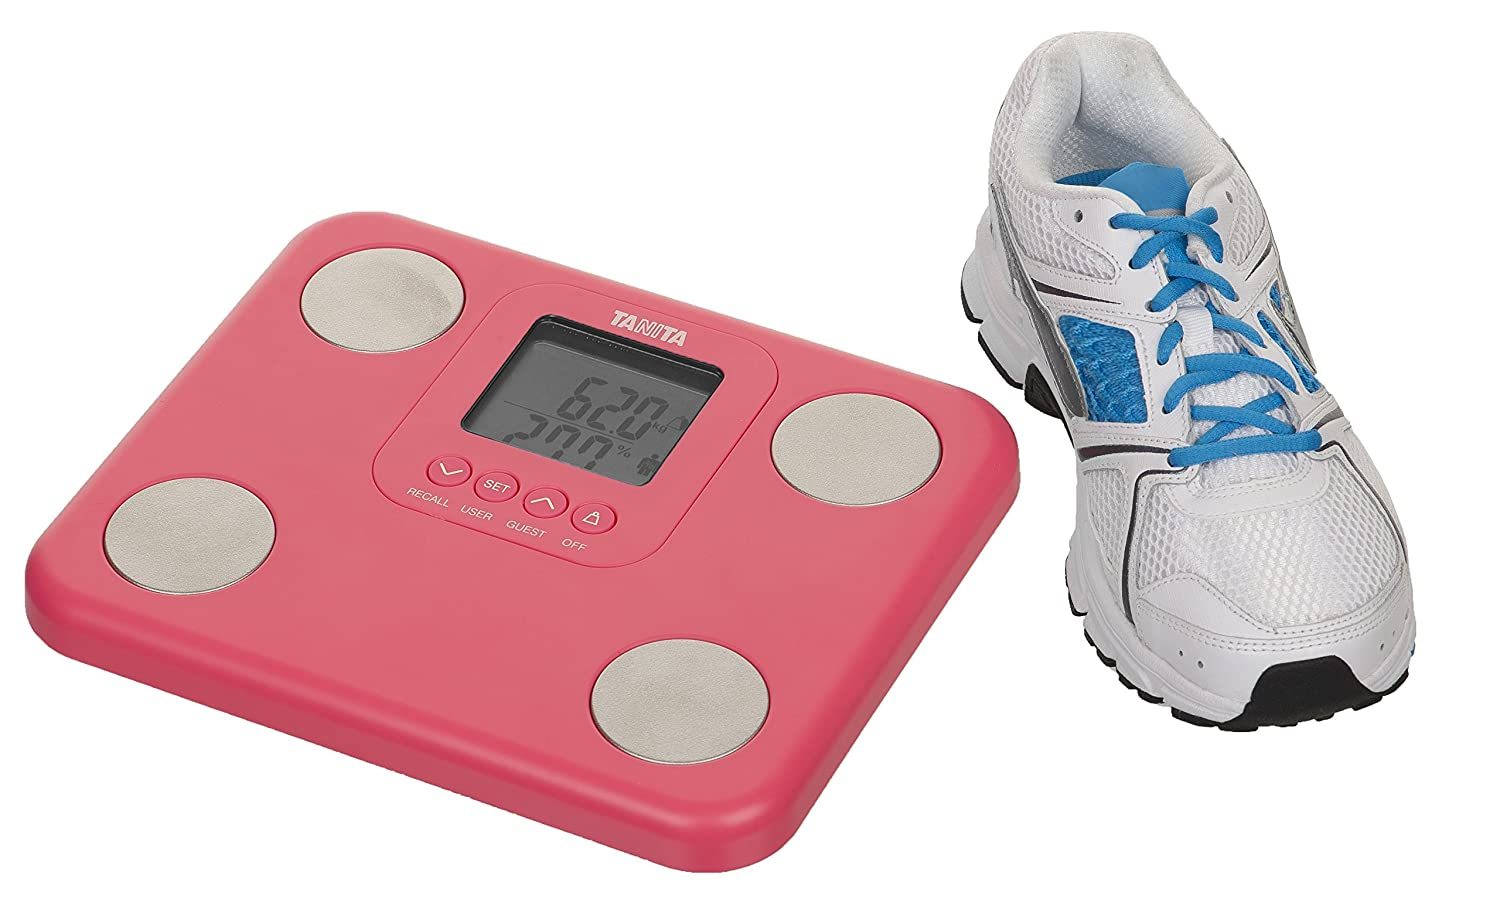 Amazon.com: Tanita- Bc730/pink Innerscan Body Composition Monitor - Pink: Health & Personal Care